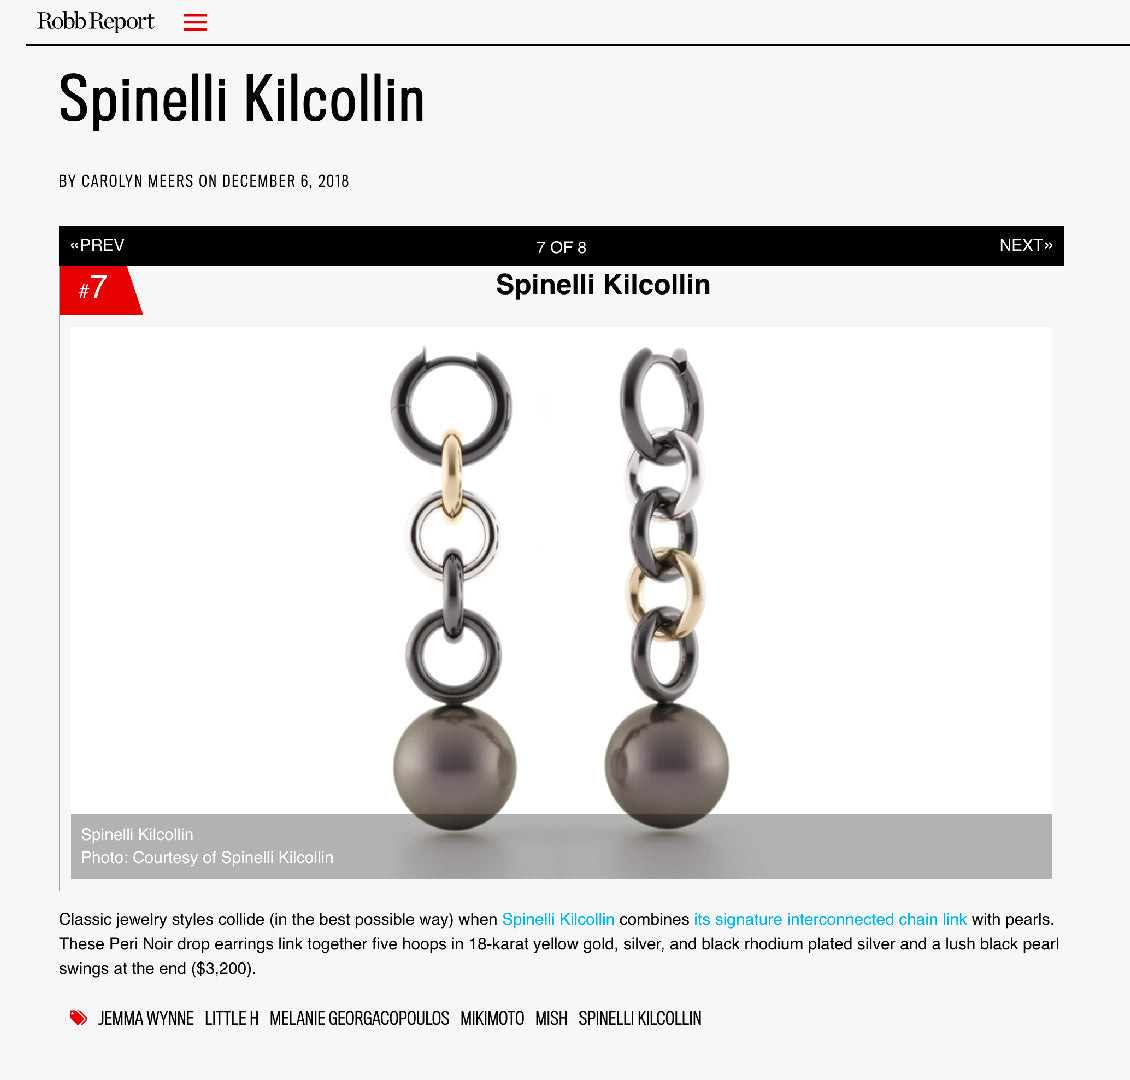 spinelli kilcollin robb report peri noir earring linked-rings luxury-jewelry